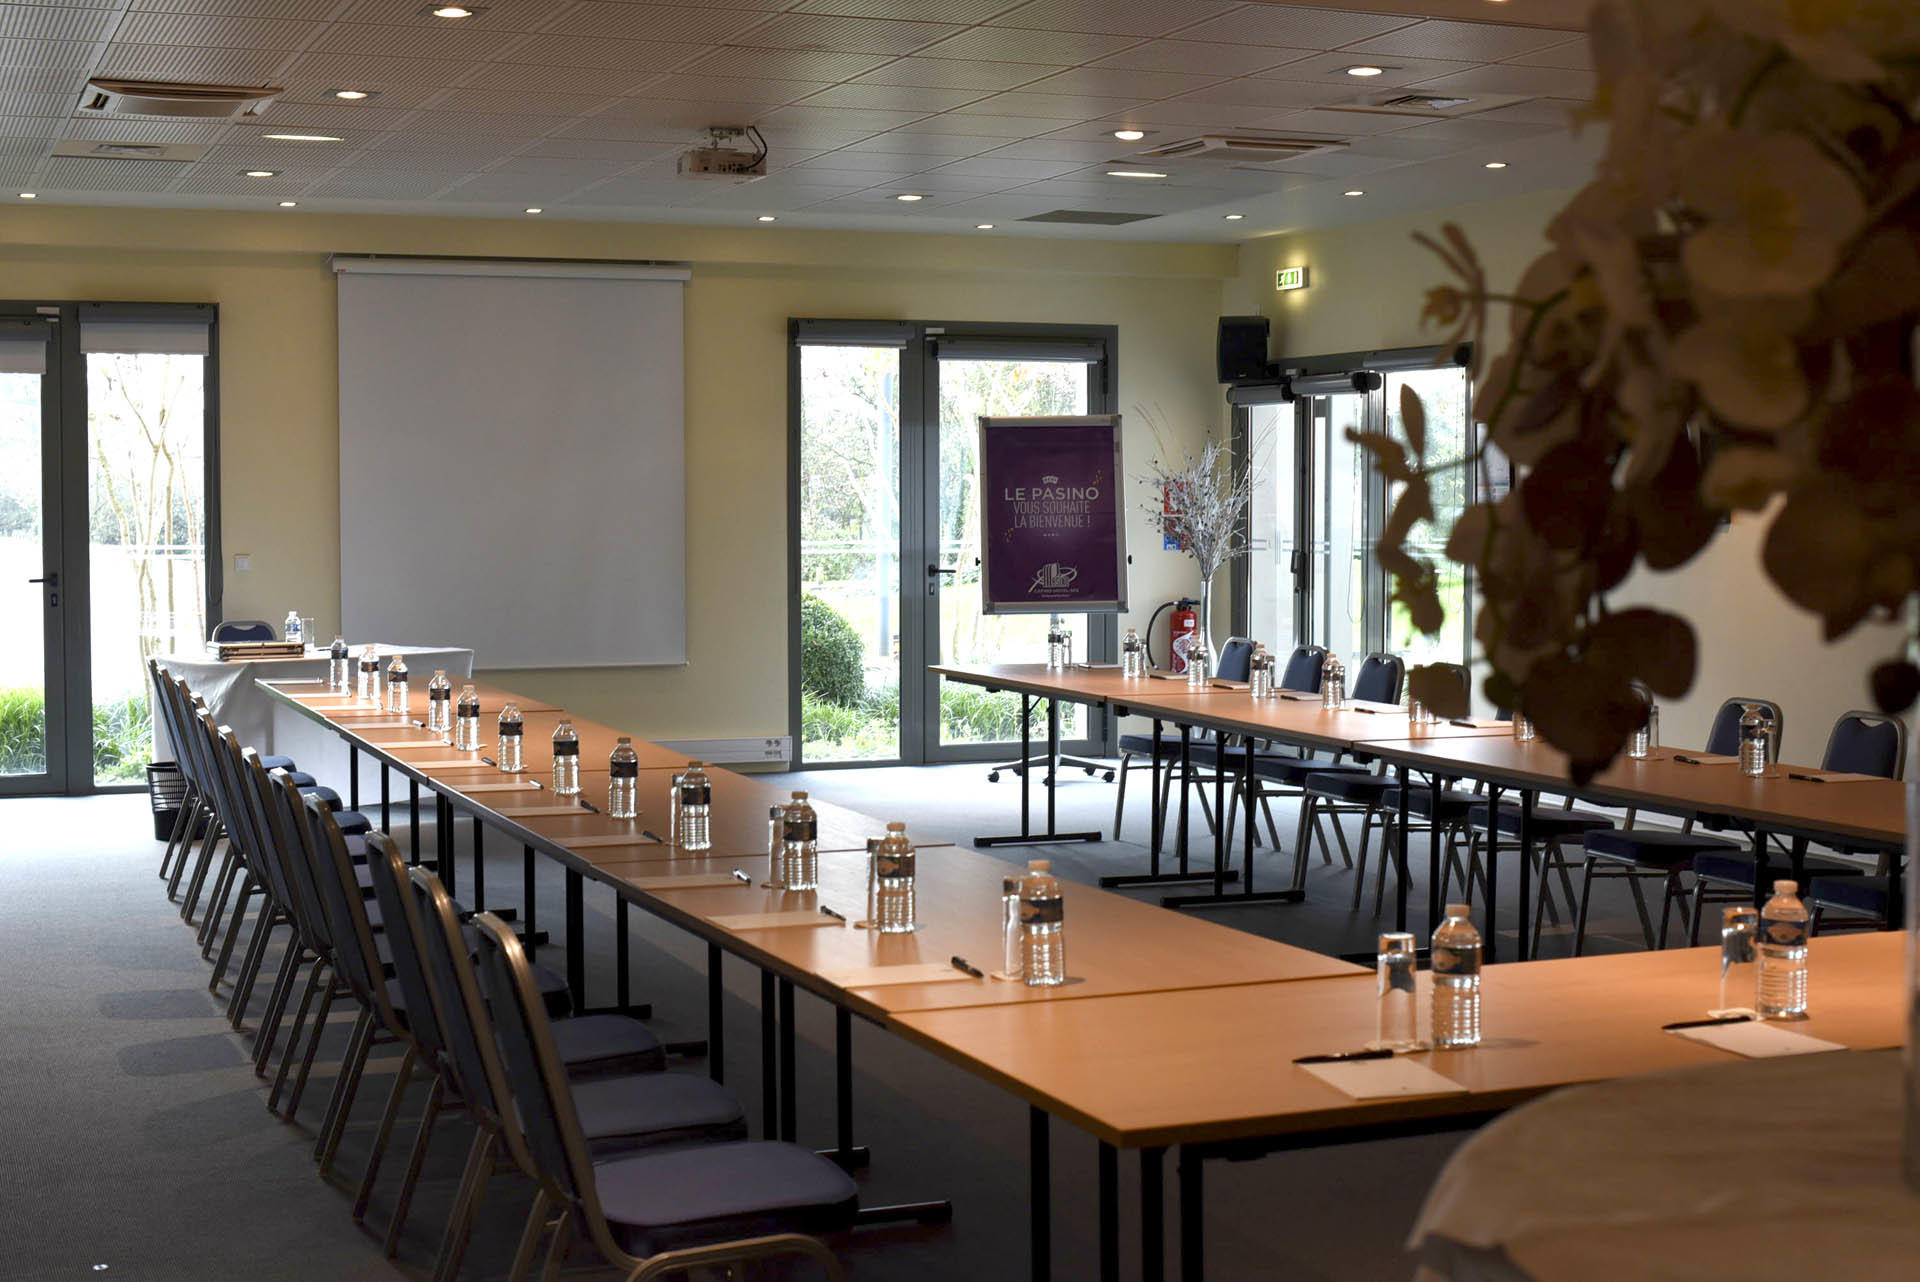 Seminar at Hôtel du Pasino in Saint-Amand-Les-Eaux, France